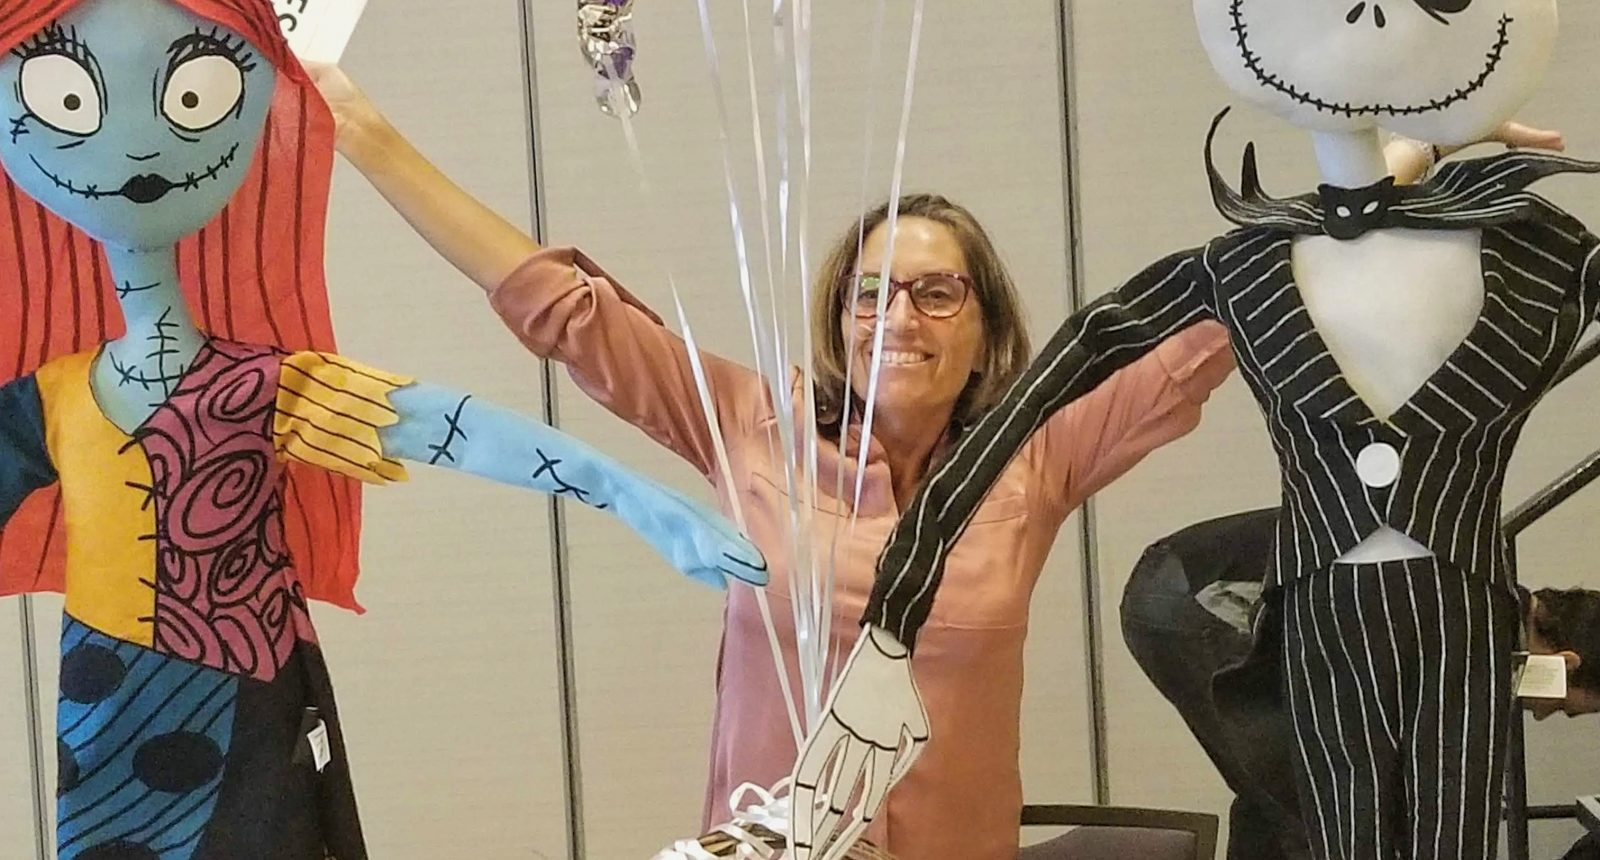 Female social worker with balloons and arms raised